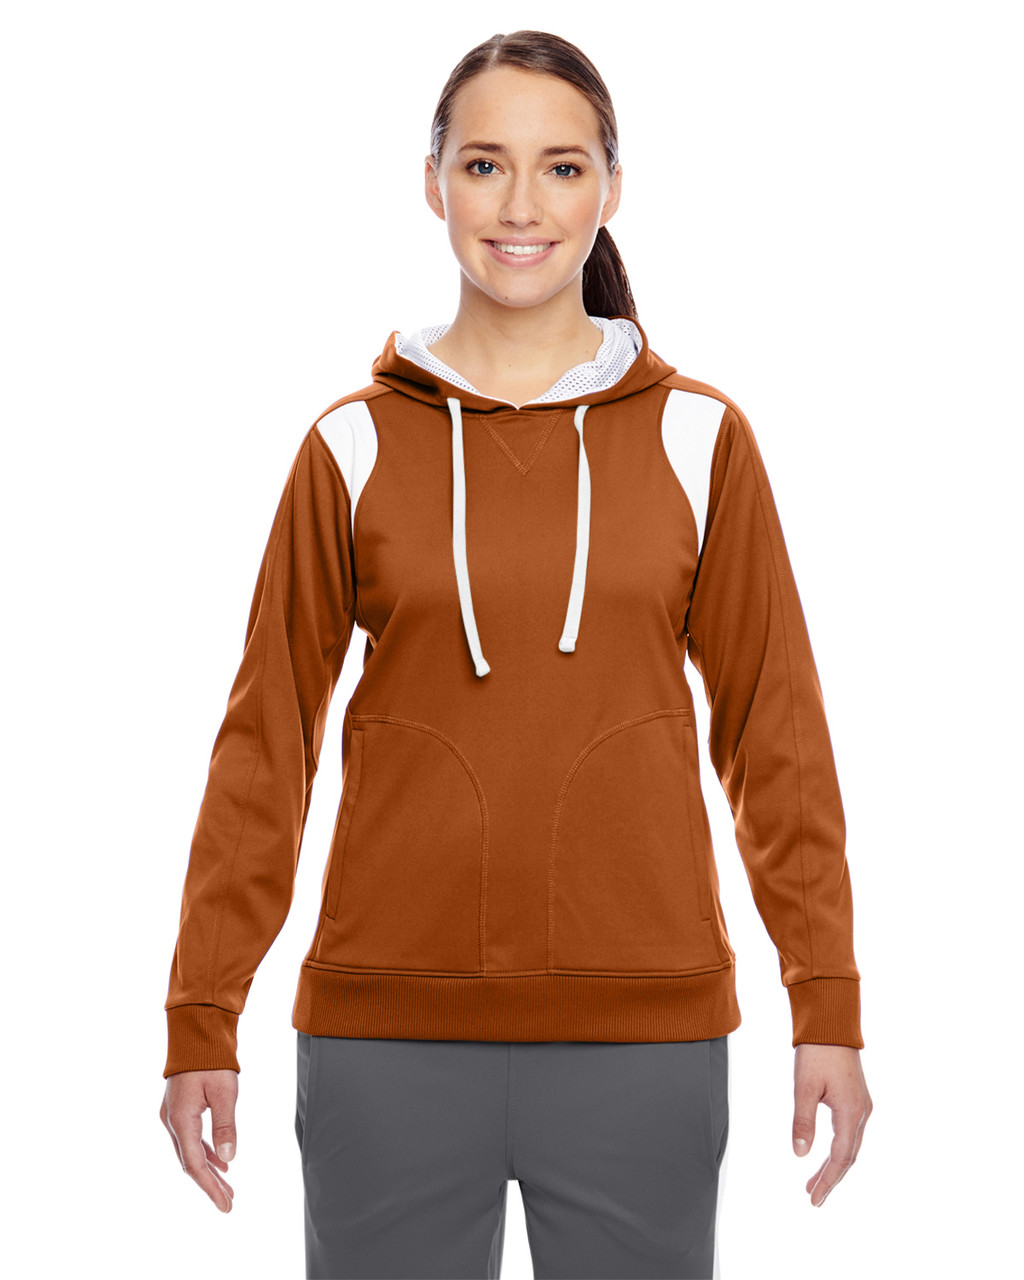 Burnt Orange/White - TT30W Team 365 Ladies' Elite Performance Hoodie | Blankclothing.ca